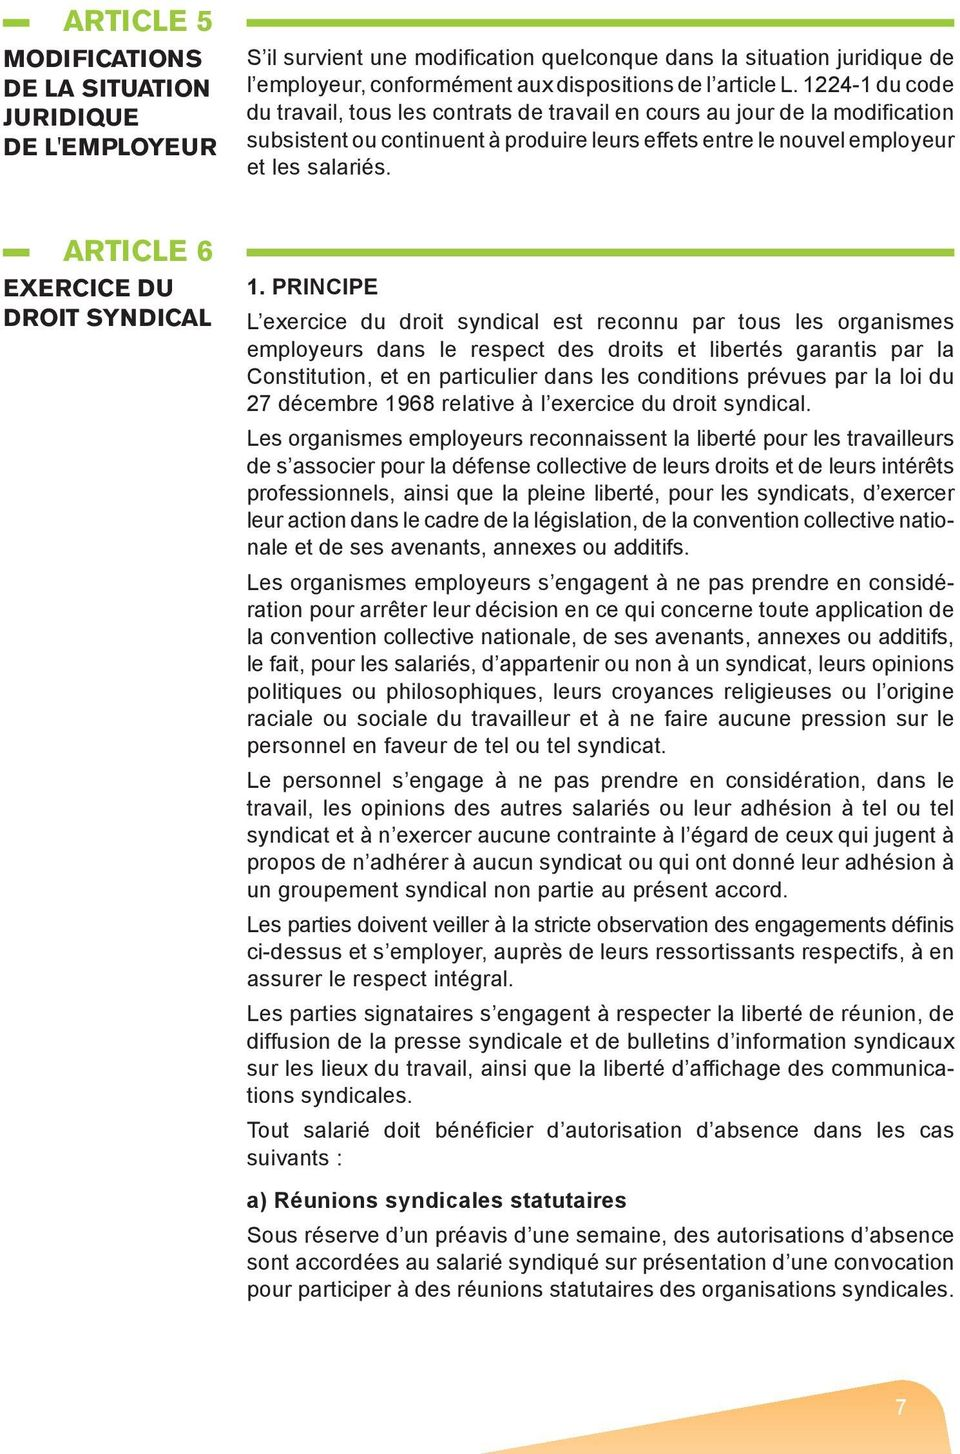 ARTICLE 6 EXERCICE DU DROIT SYNDICAL 1.